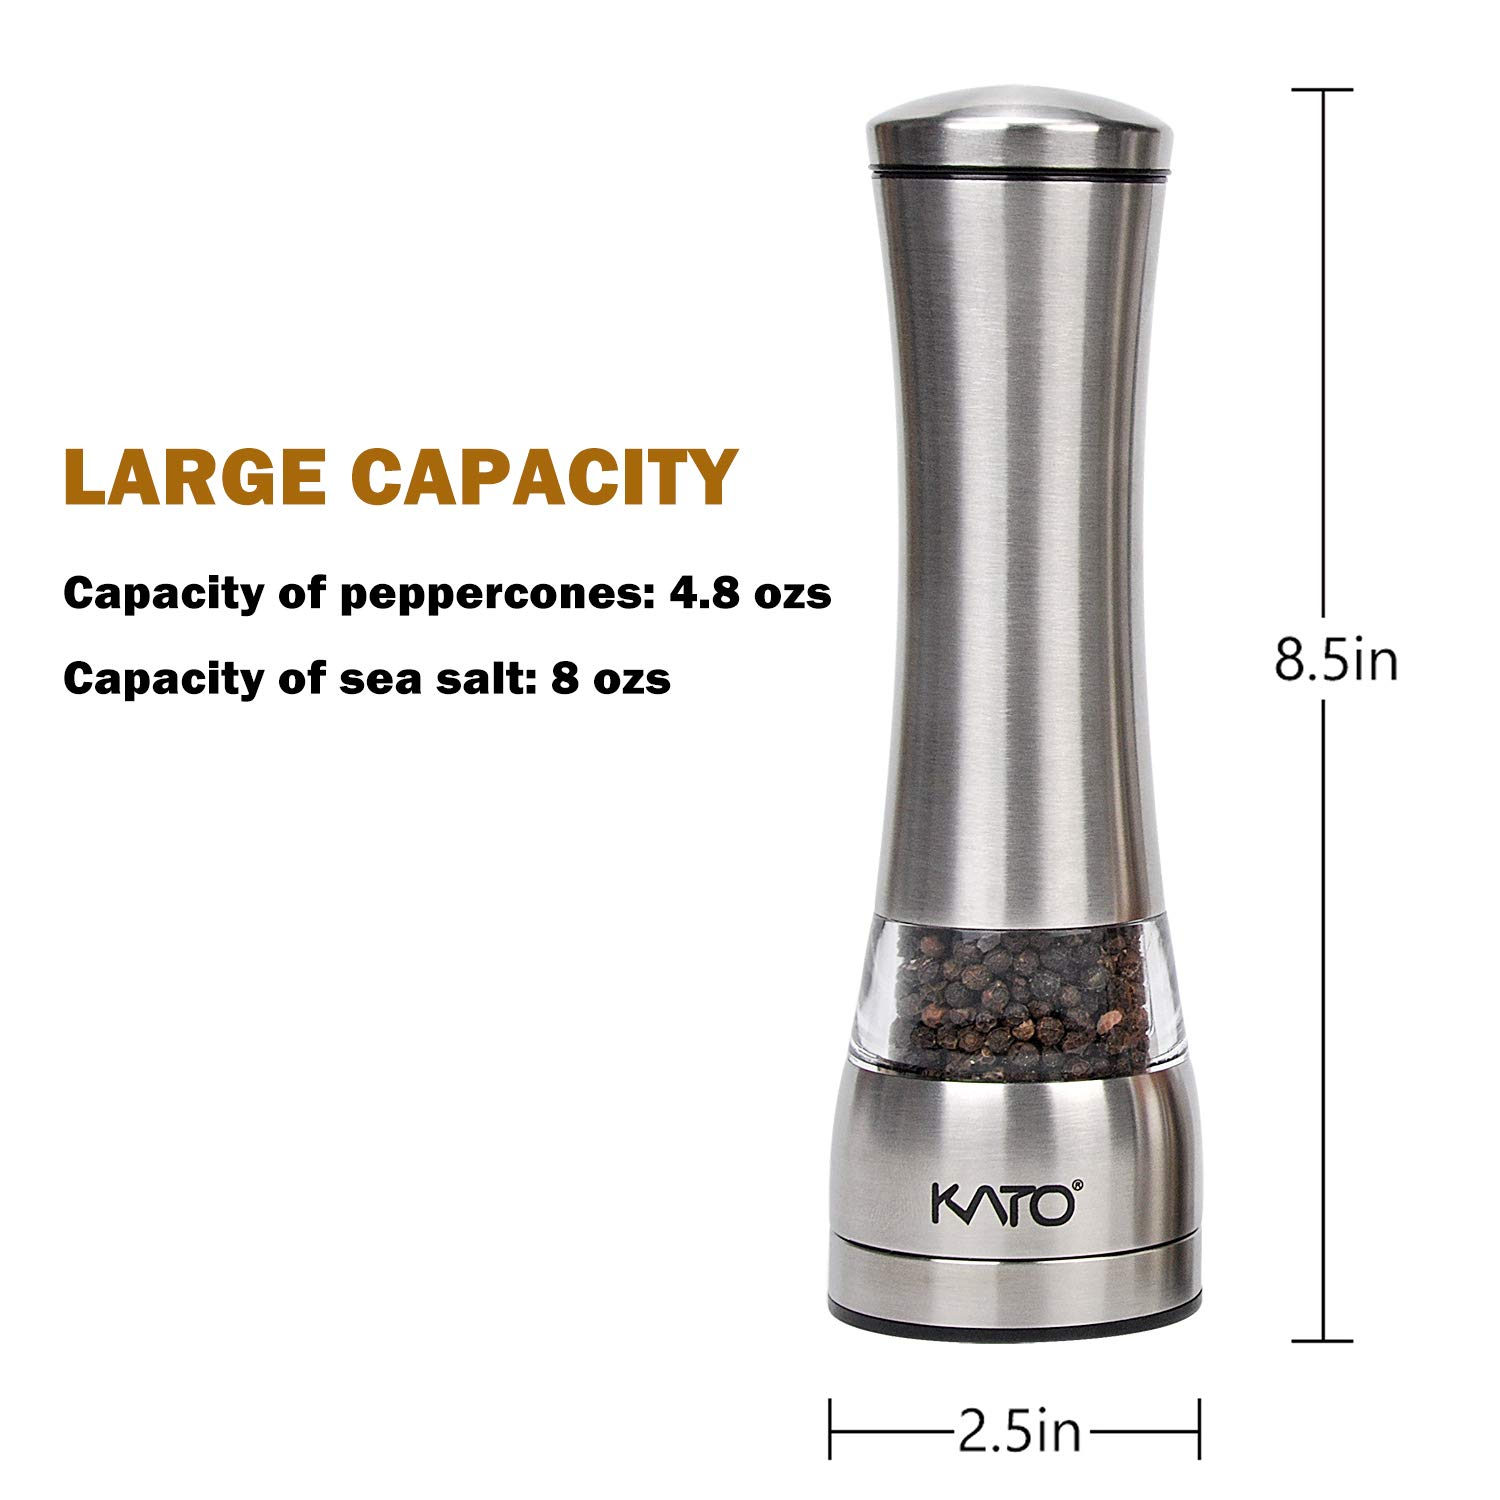 Kato Manual Stainless Steel Salt and Pepper Grinder Set, Best Ceramic Refillable Pepper Mills for Himalayan Salt, Pepper and Other Spices, 2 Pack